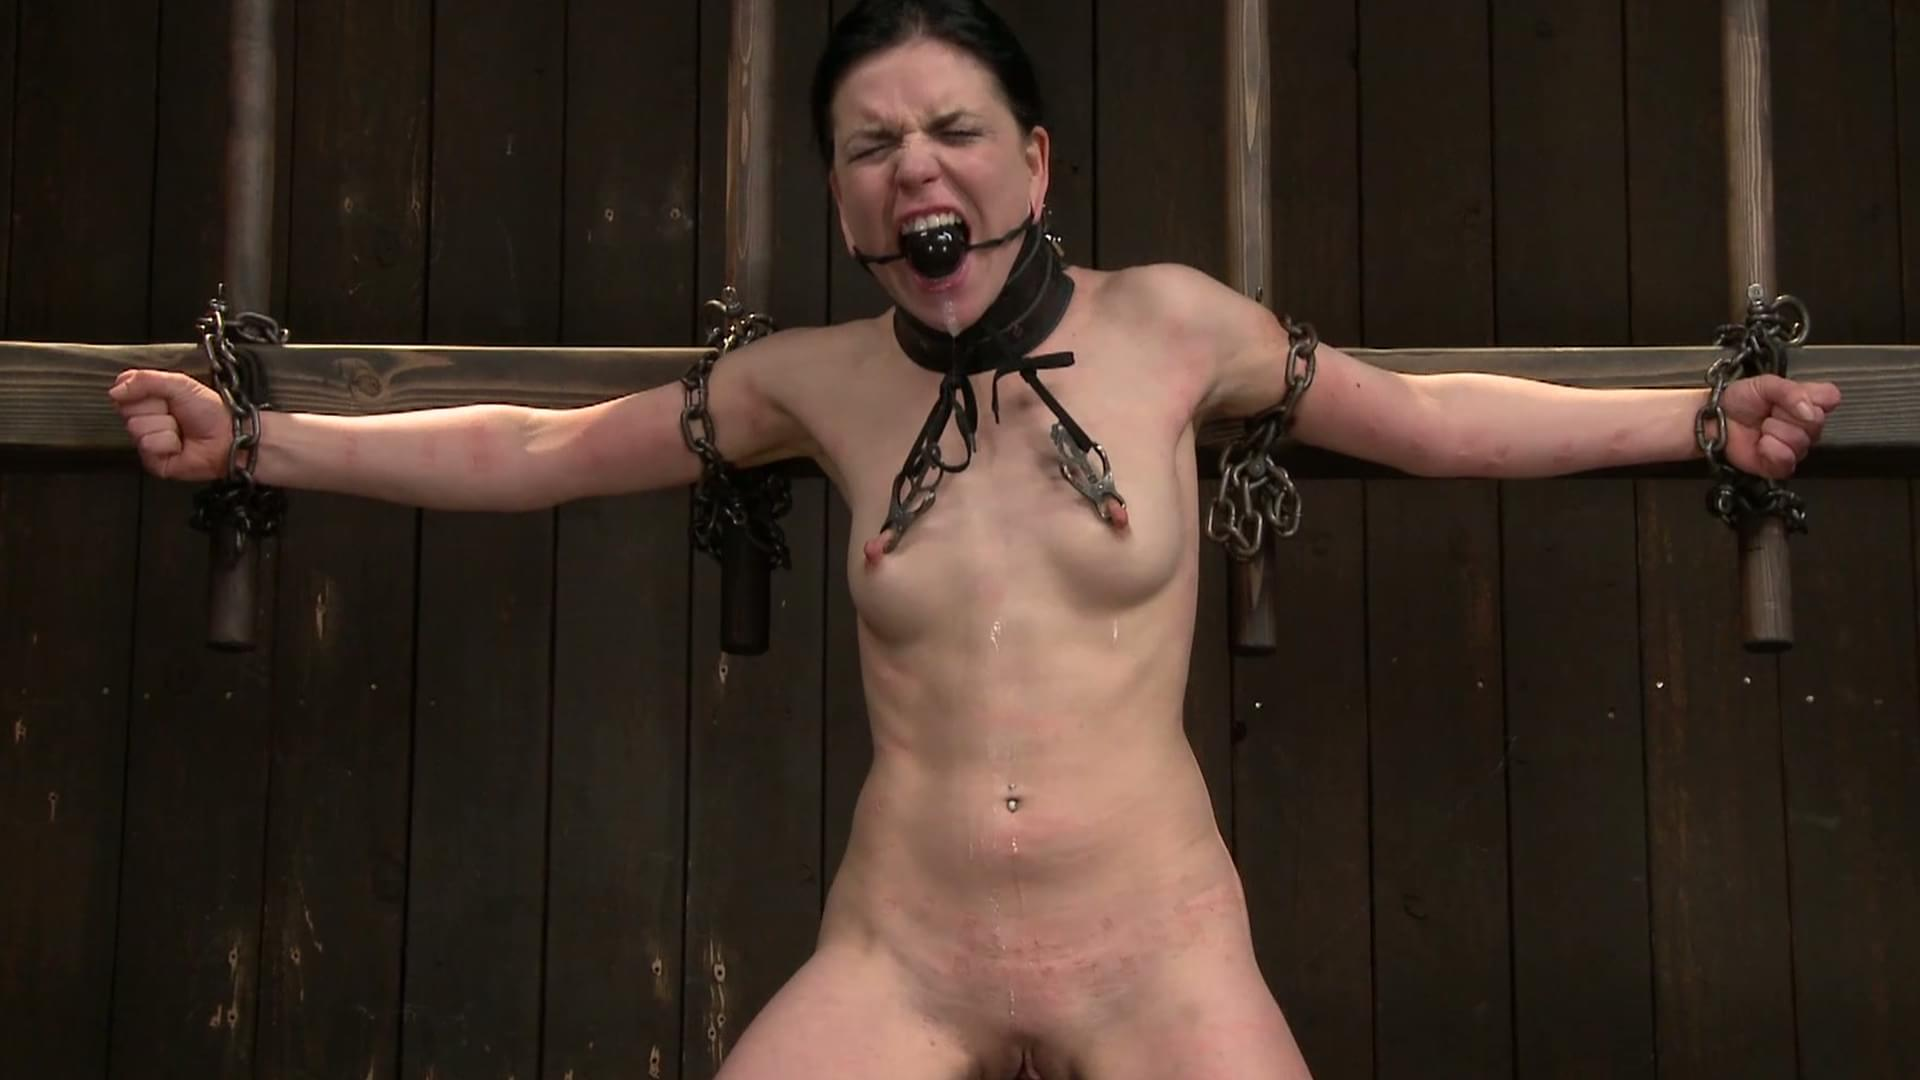 Young blonde slave girl gagged and suspended for bdsm nipple torture